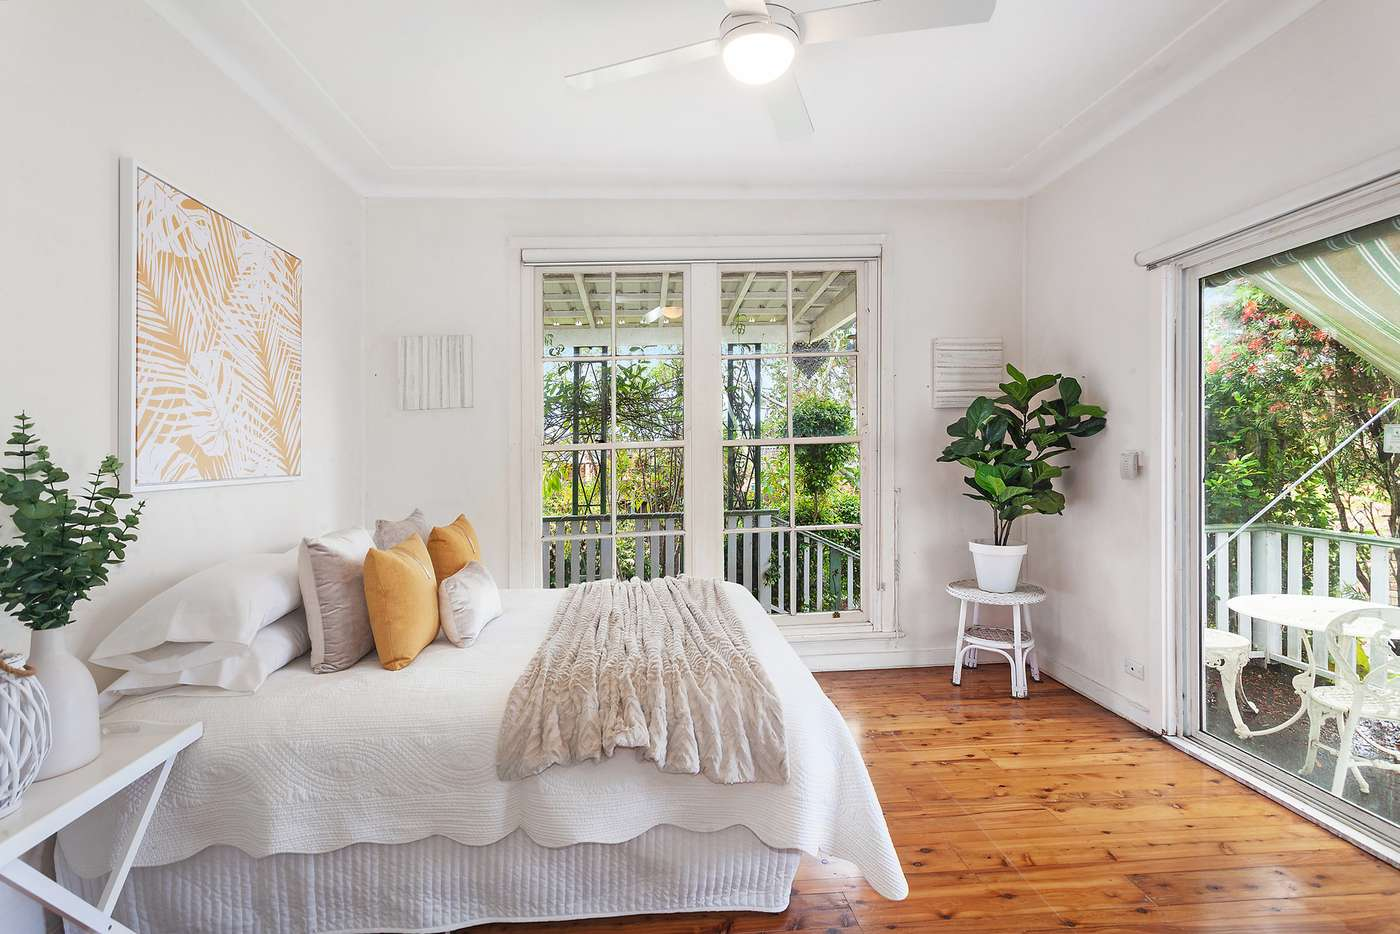 Main view of Homely house listing, 203 Burge Road, Woy Woy NSW 2256